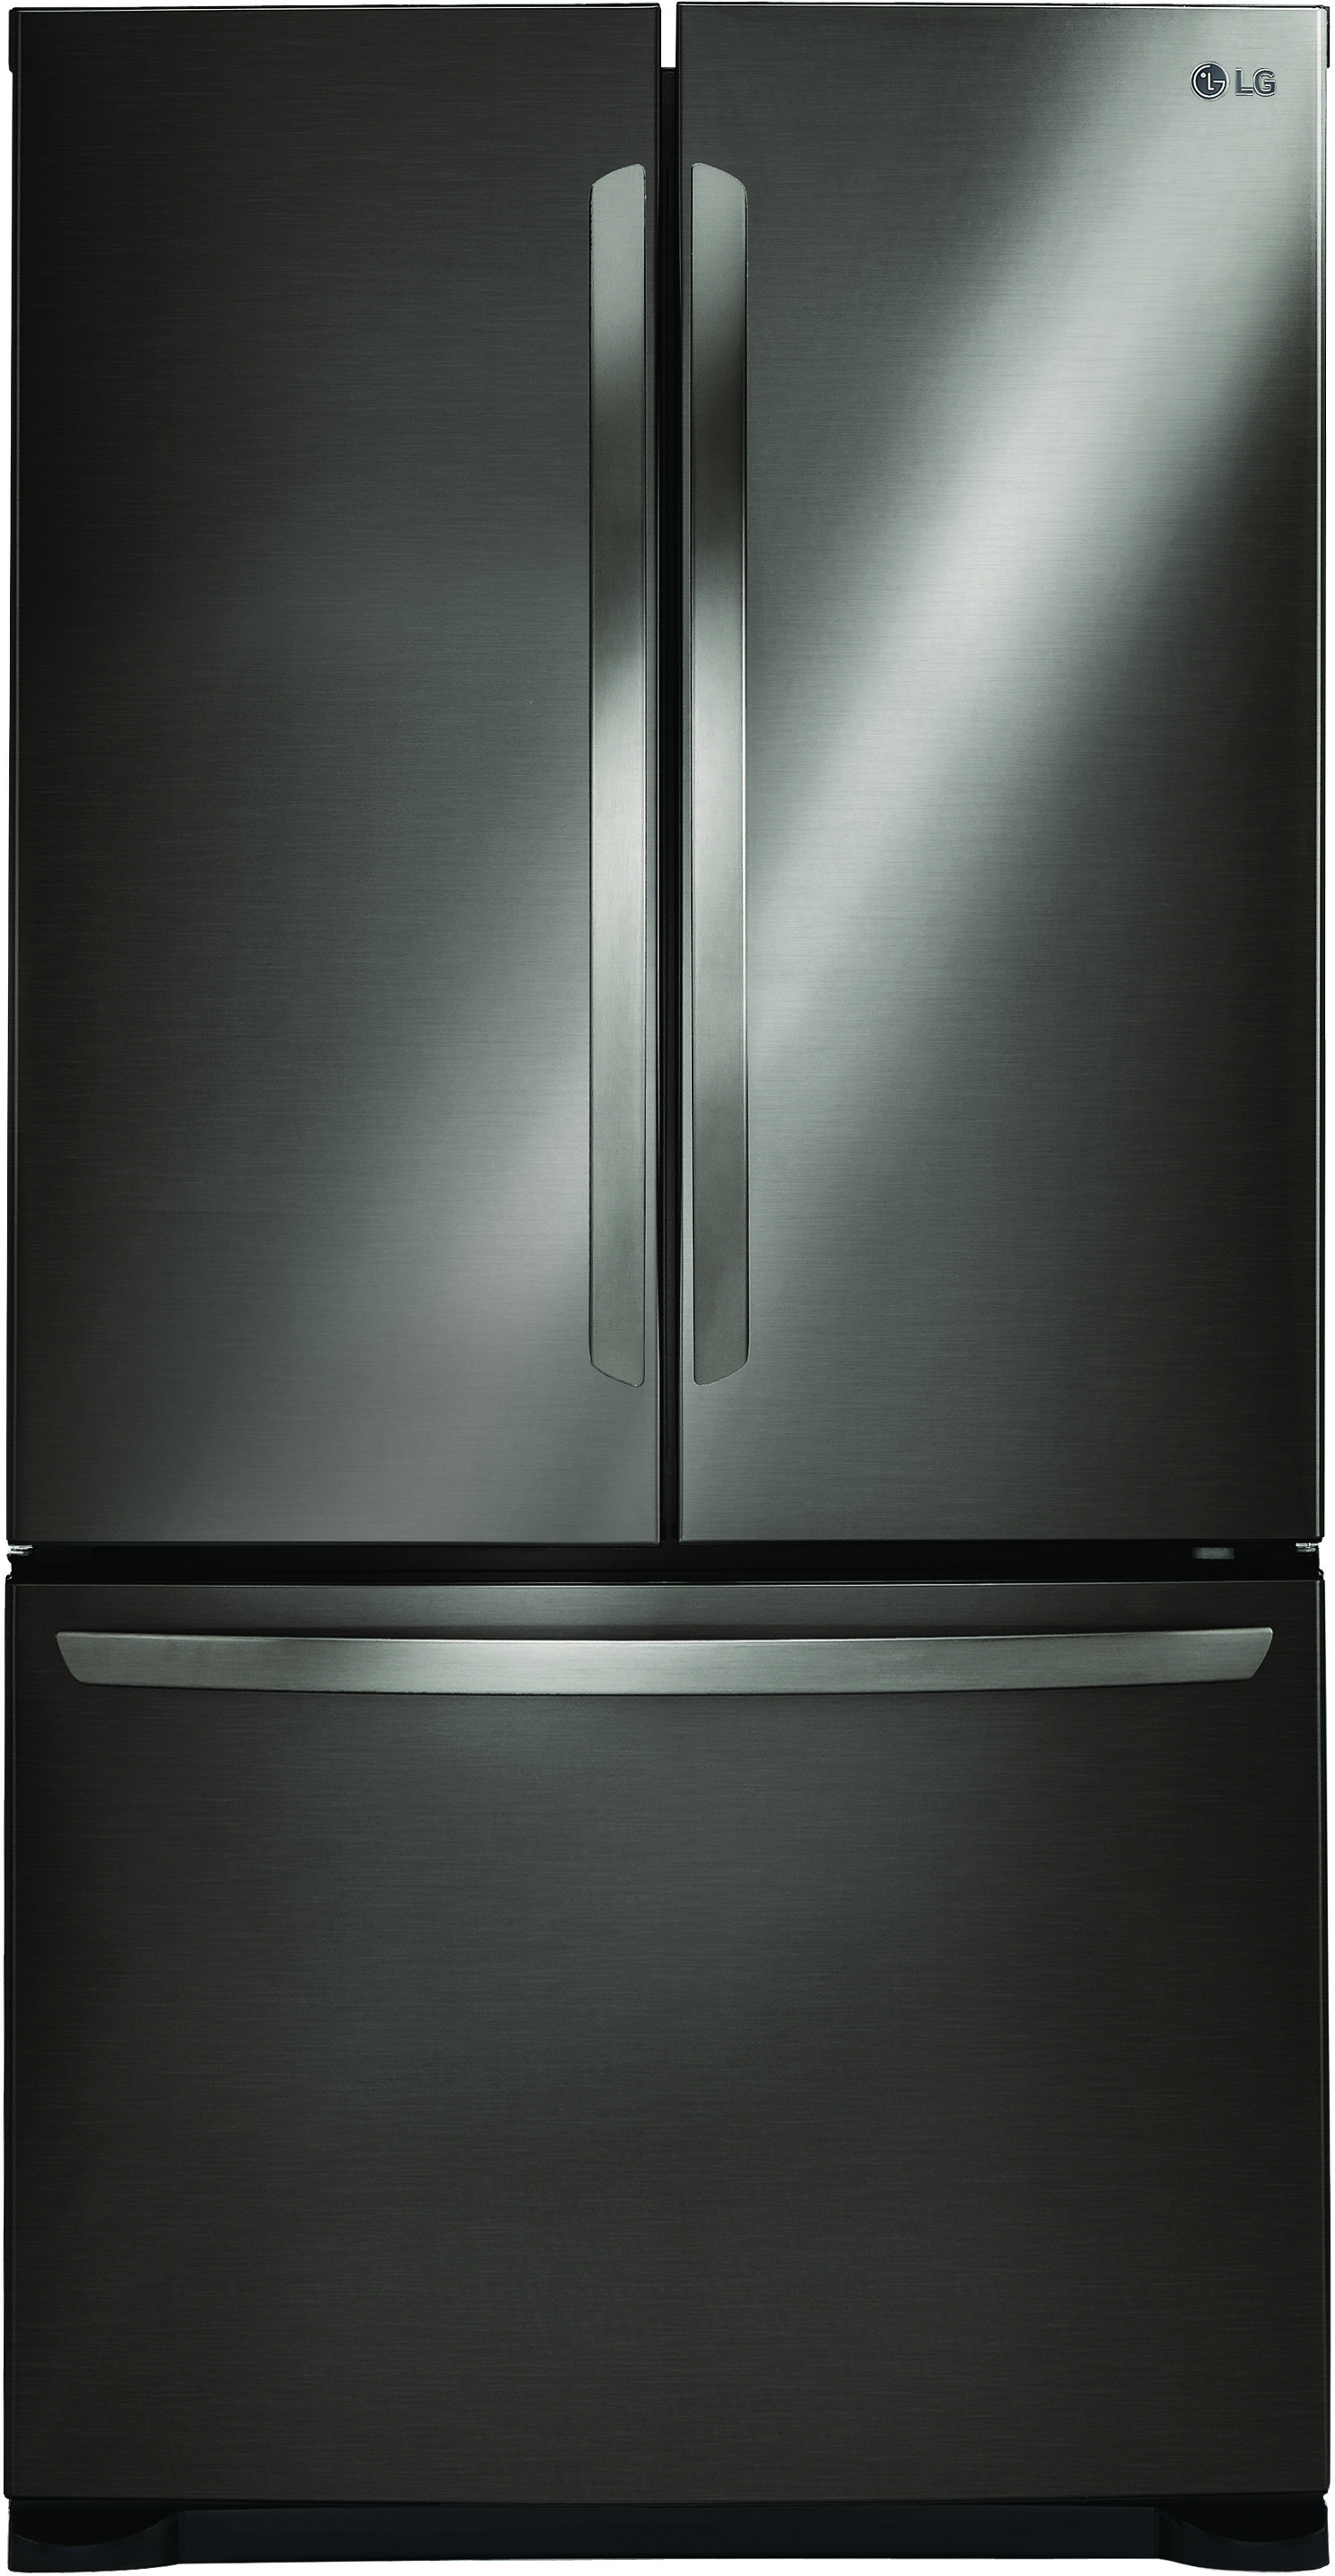 refrigerator 64 inches tall. refrigerator 64 inches tall h